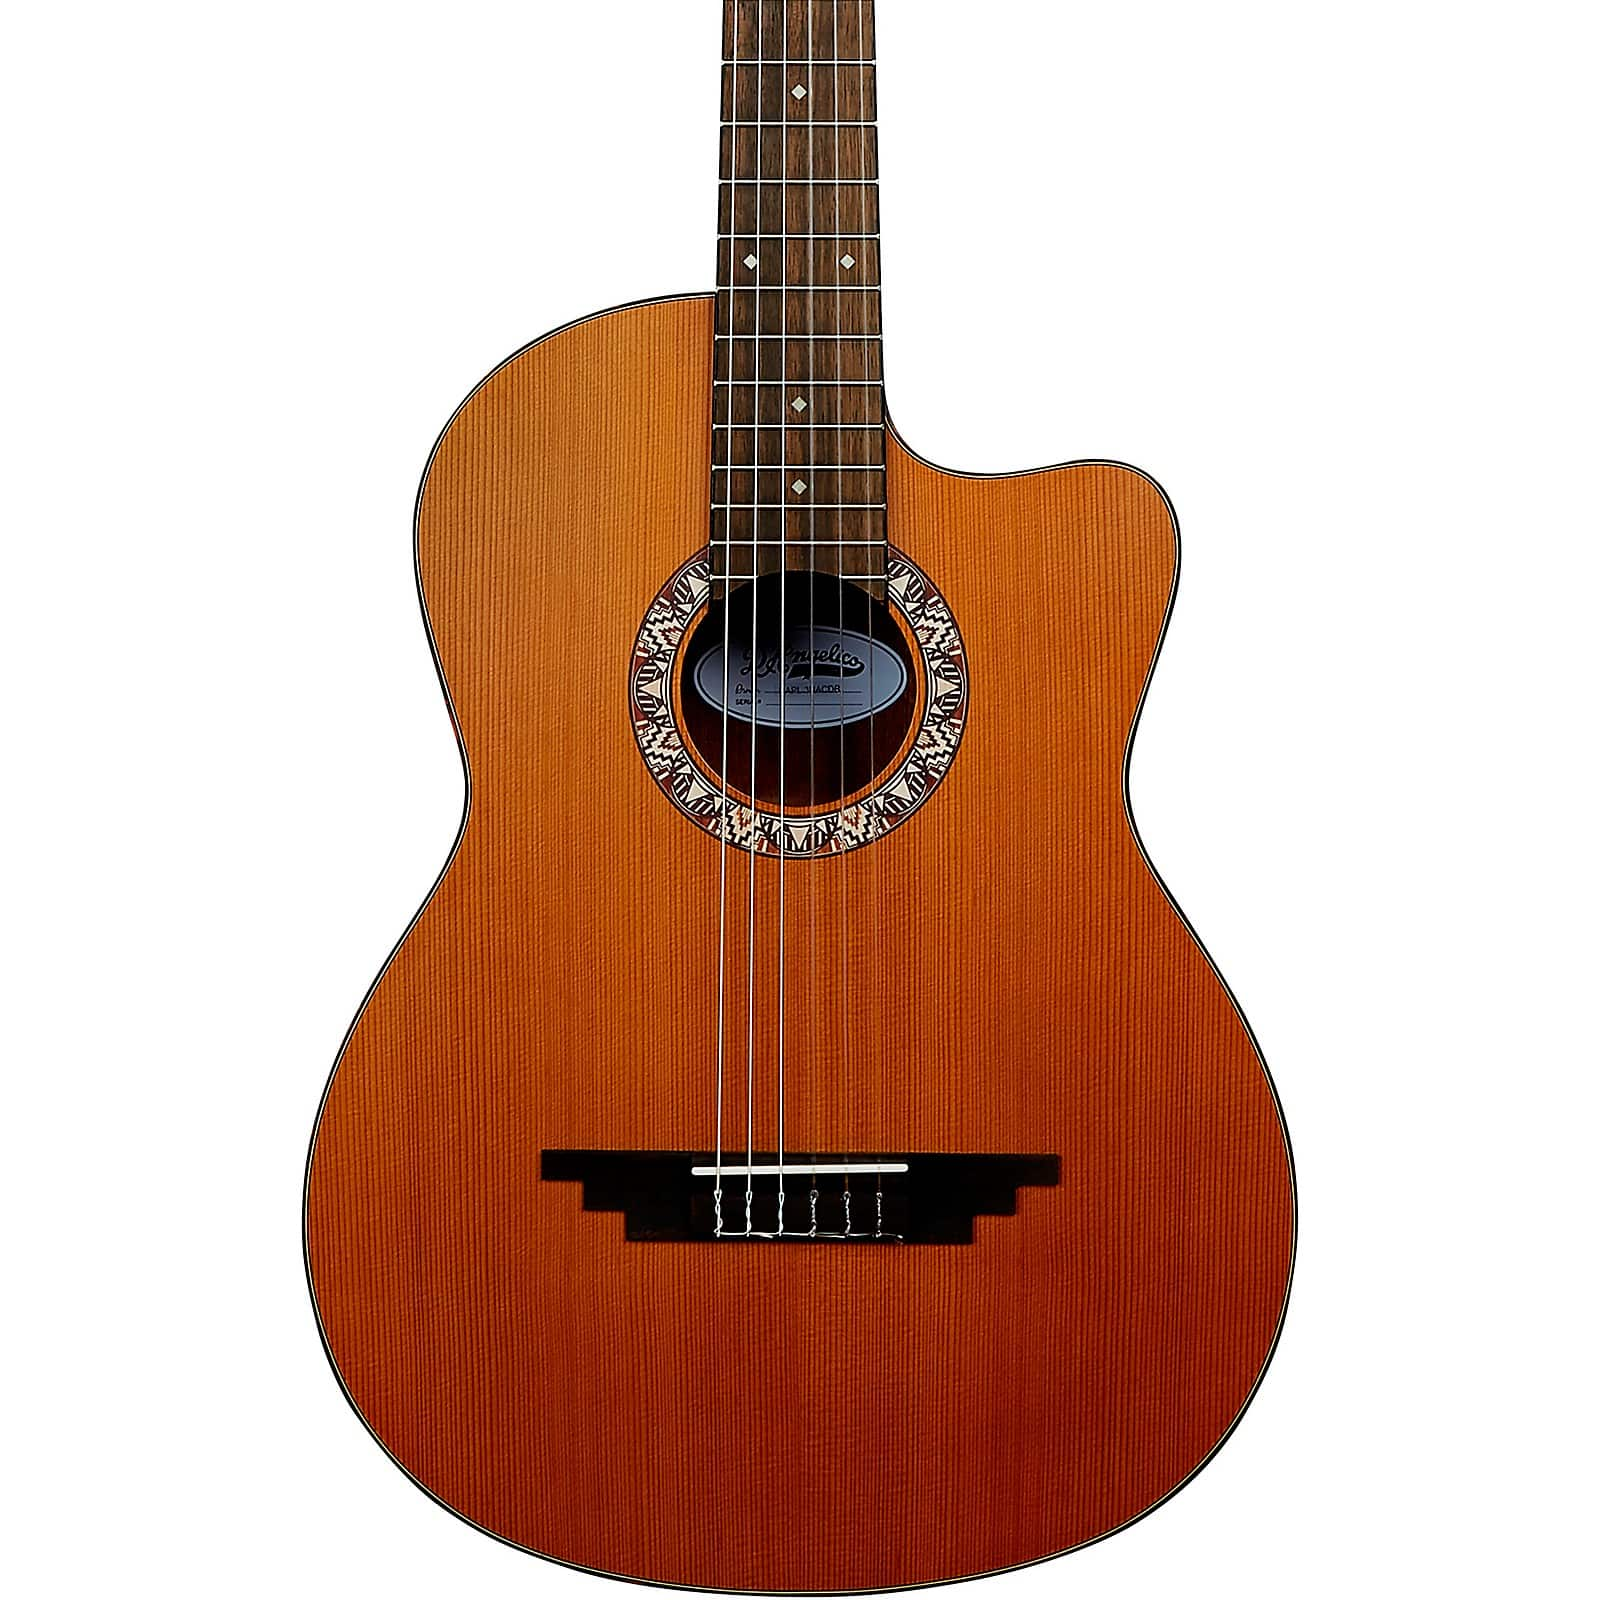 Musician's Friend: D'Angelico Premier Malta Crossover Classical Guitar Natural Sale Price $149.99 + FS